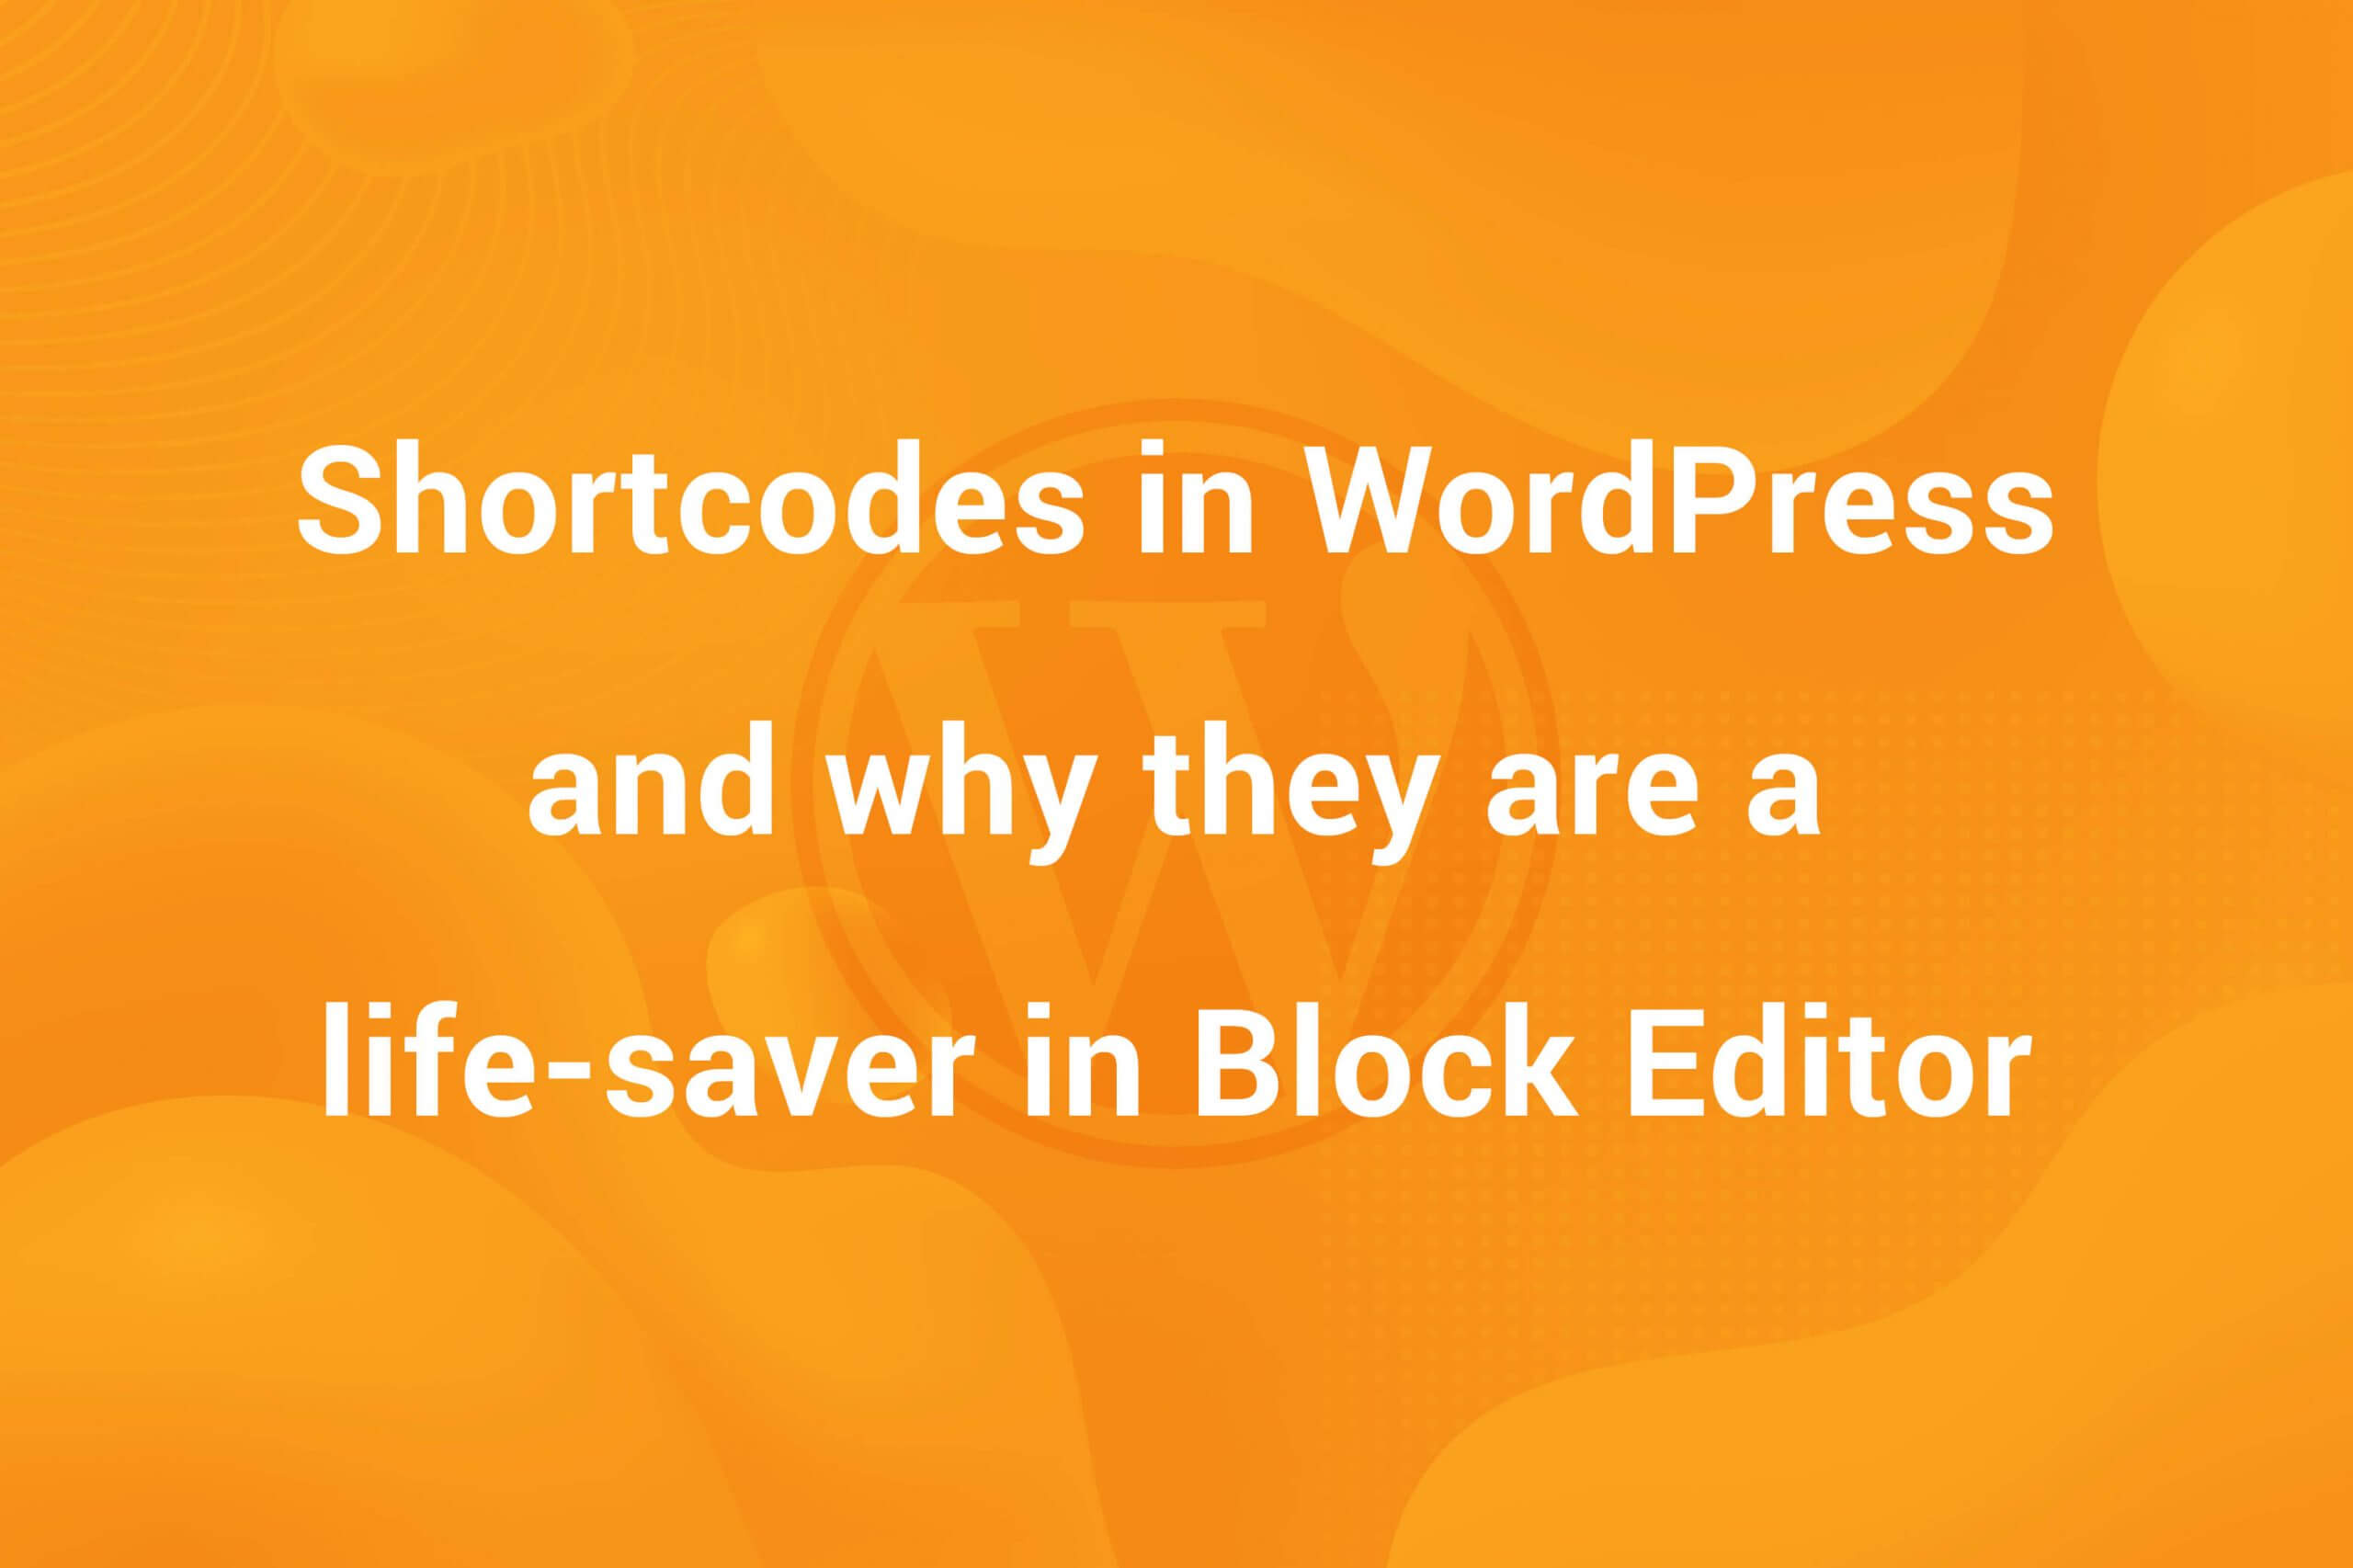 Shortcodes in WordPress and why they are a life-saver with the Block Editor